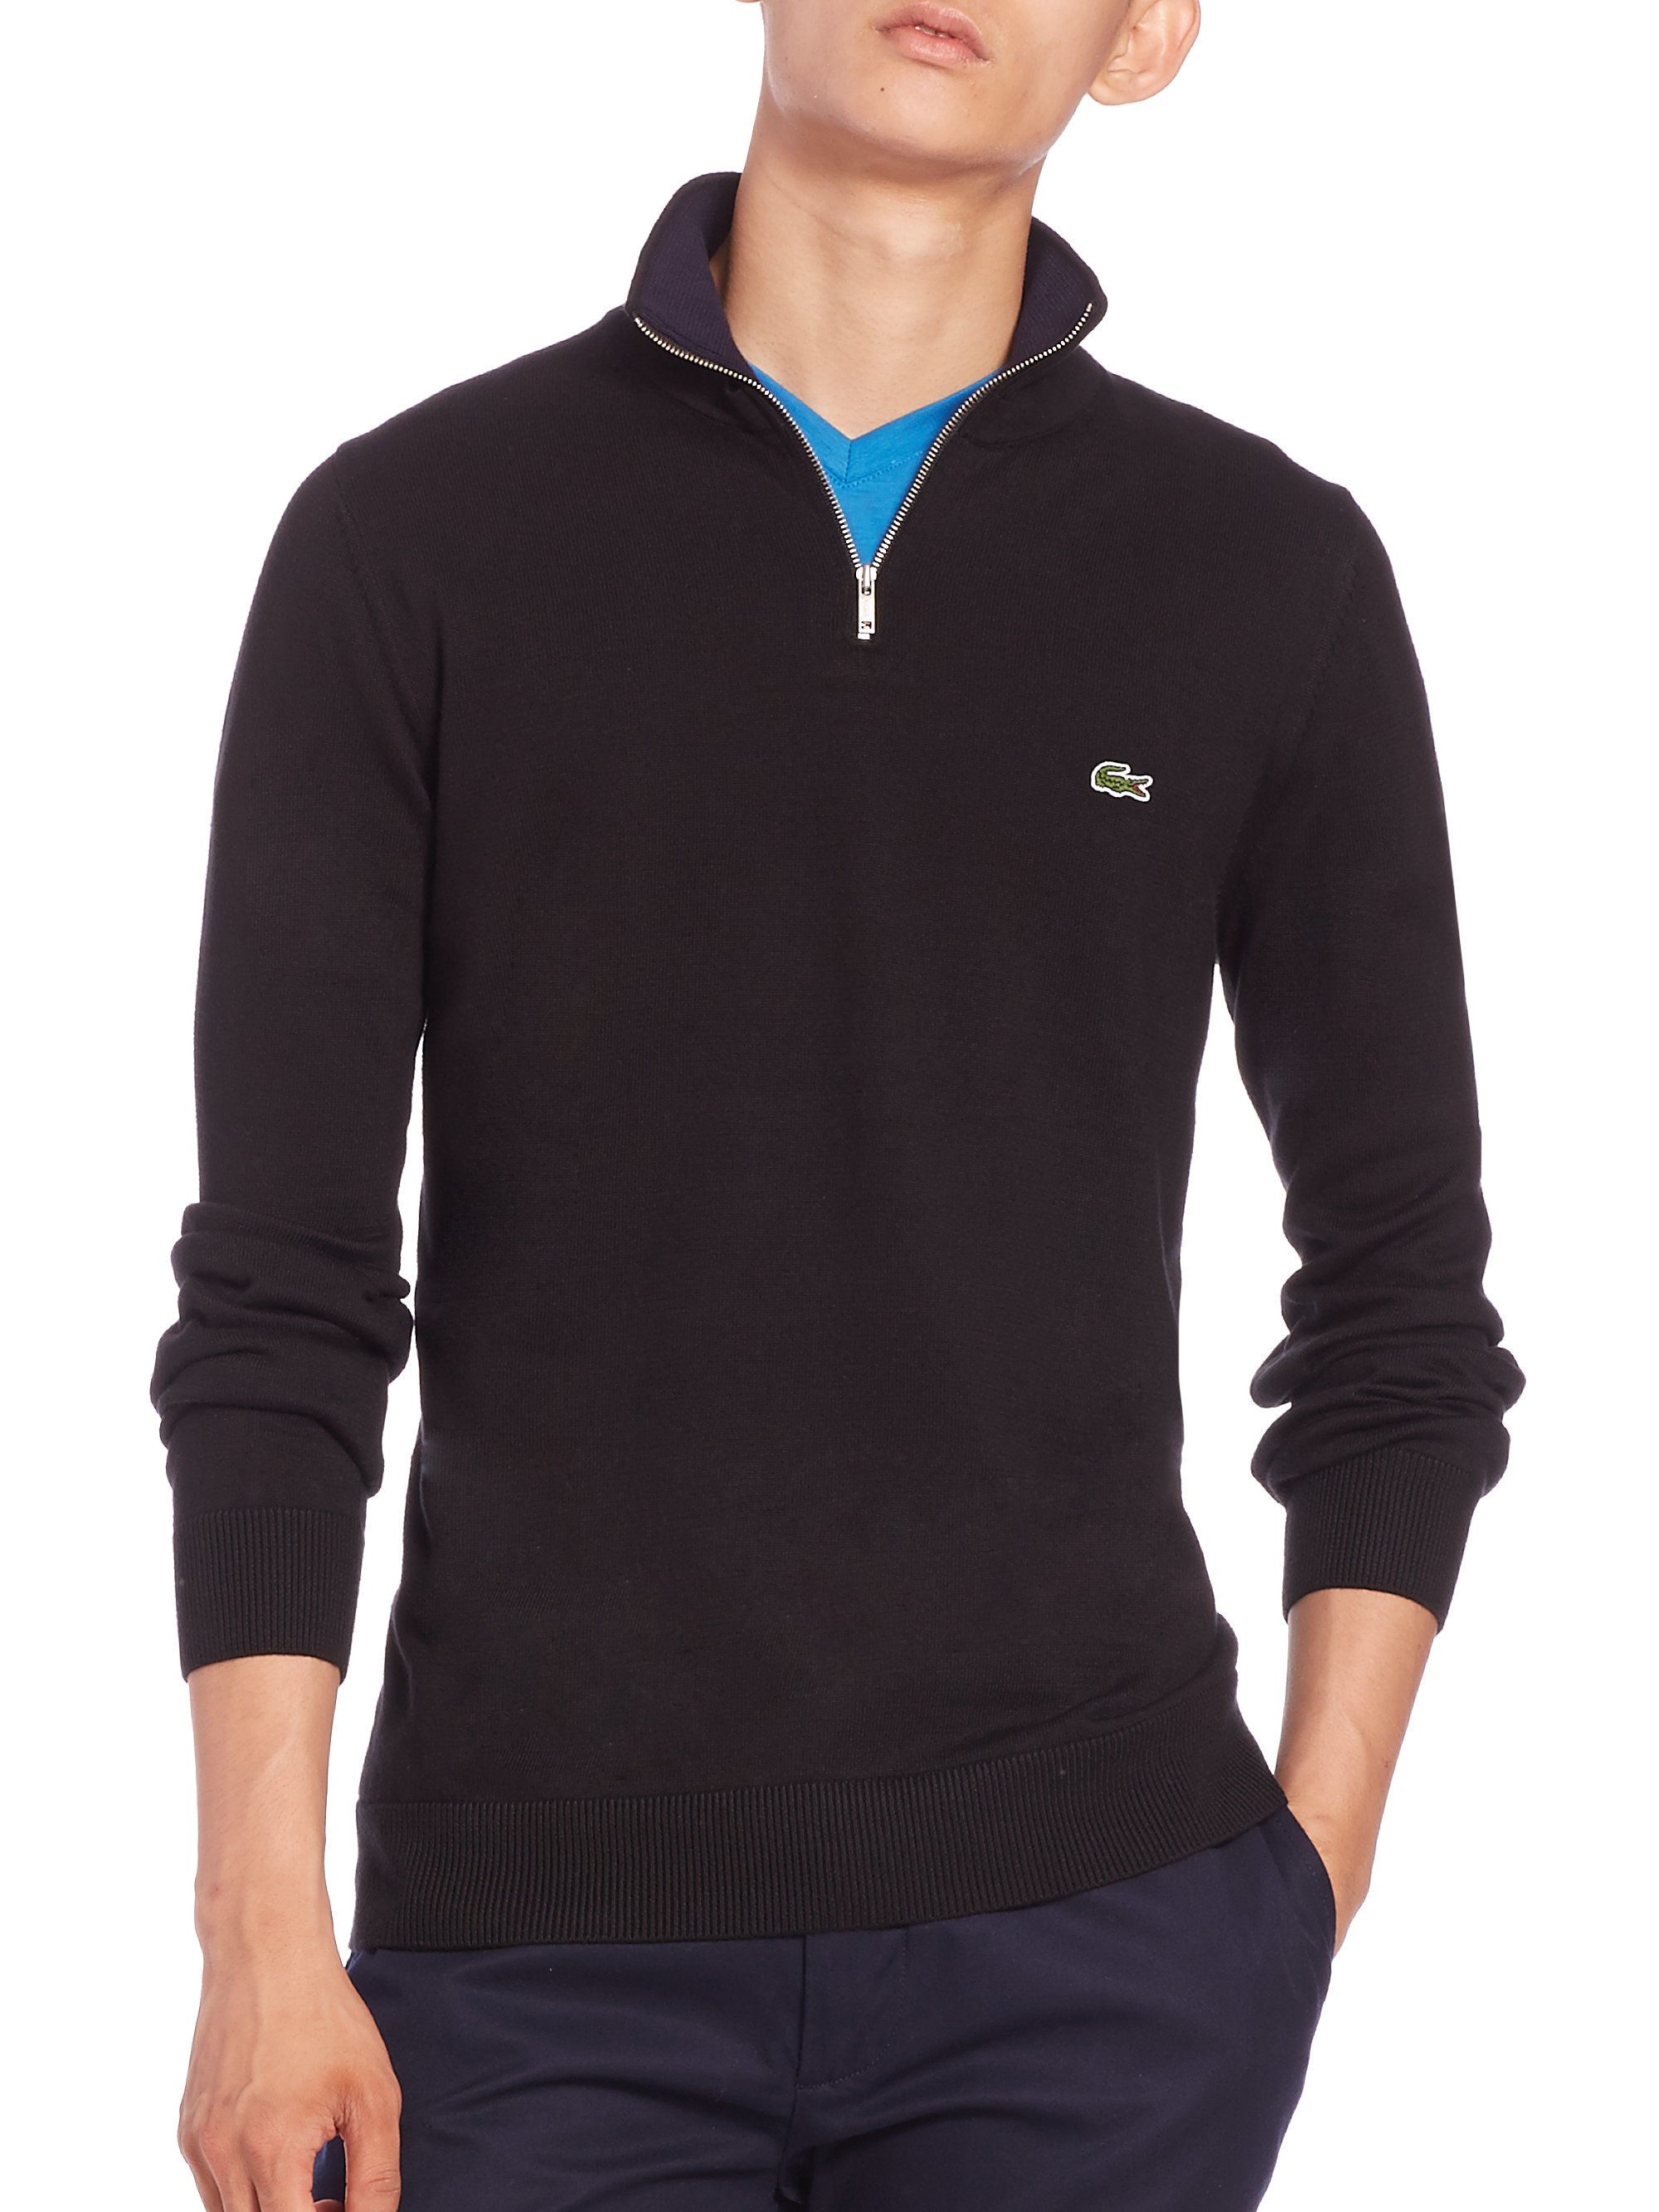 lacoste quarter zip cotton sweater in black for men lyst. Black Bedroom Furniture Sets. Home Design Ideas